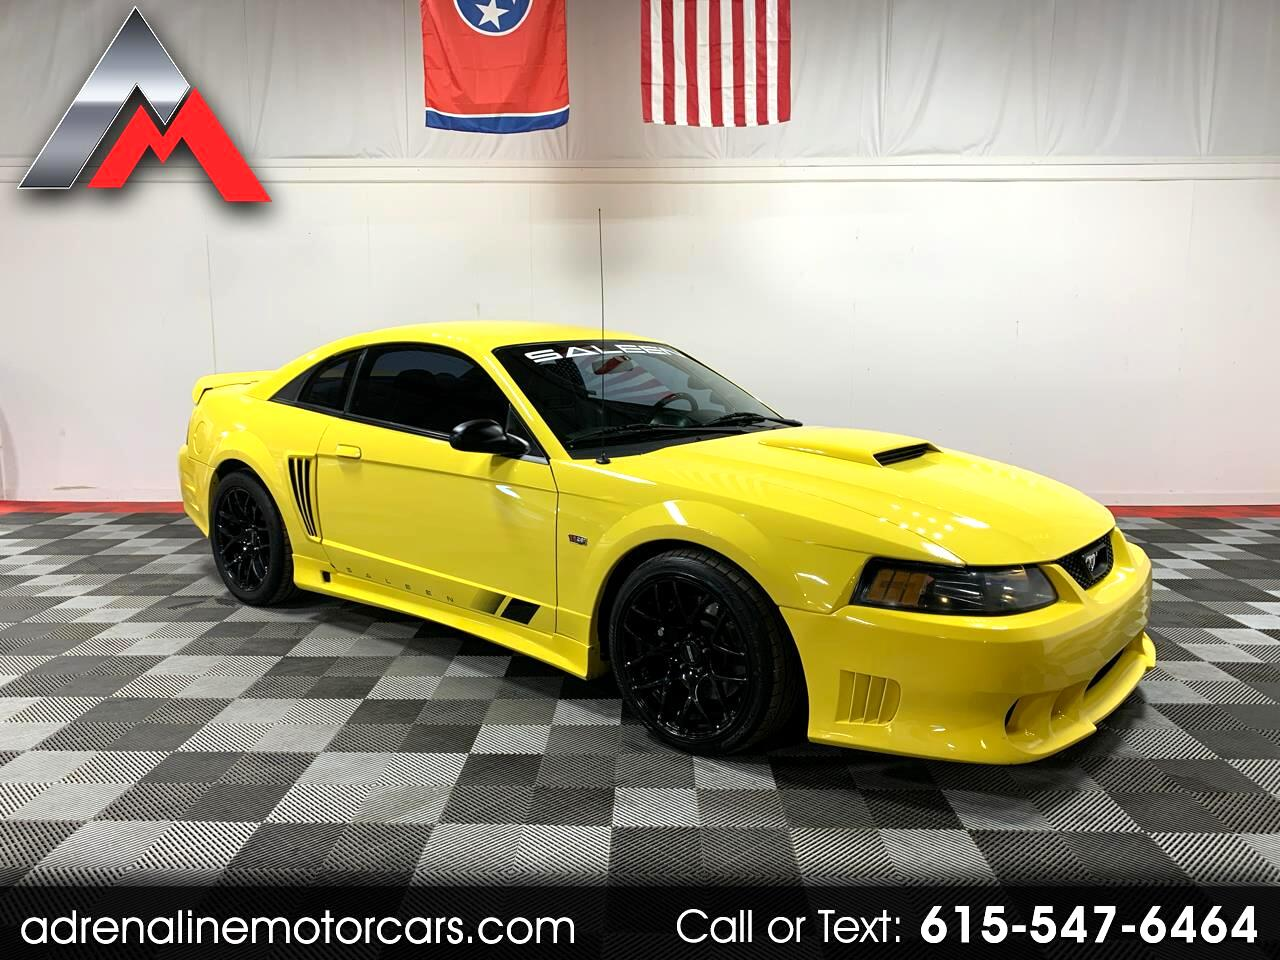 Ford Mustang S281 Saleen 2001